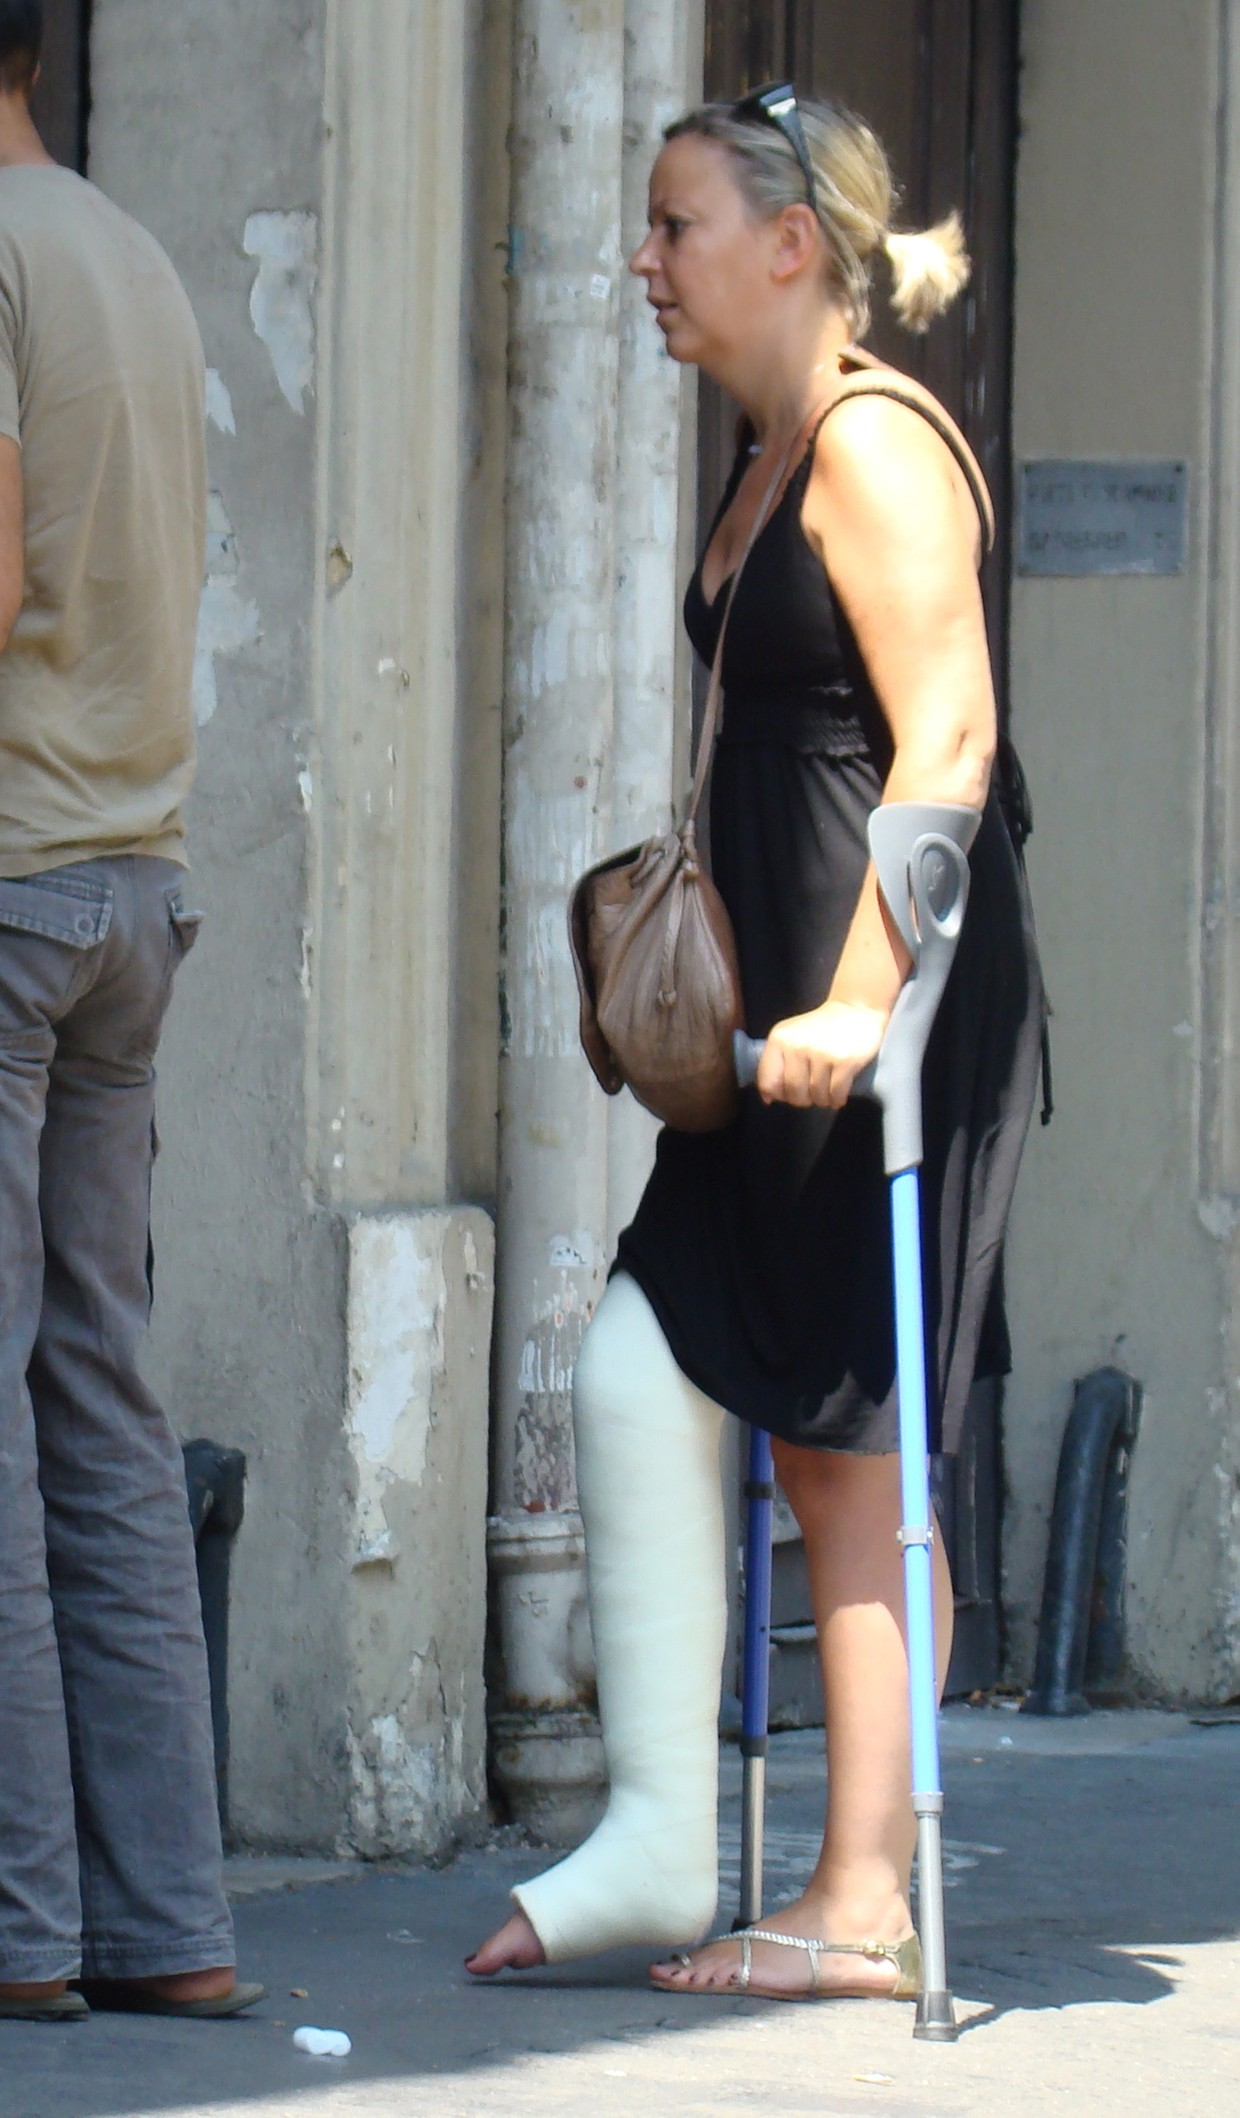 Elderly woman in a long leg cast with crutches... (Pix & Video)